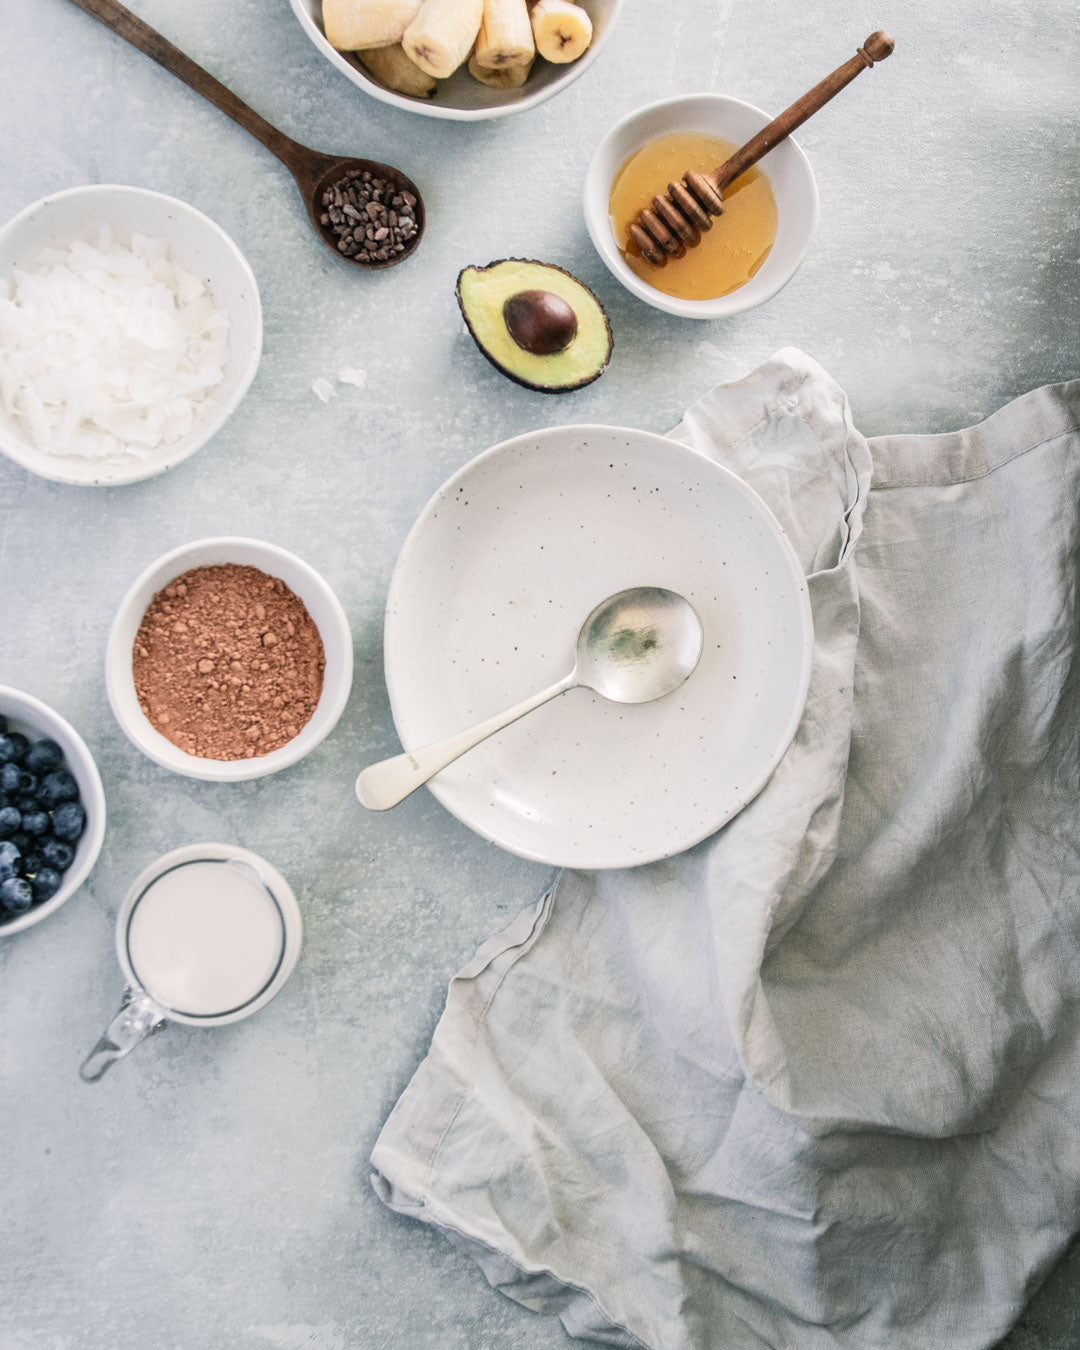 Flat lay of Winterwares ceramics containing the ingredients for a chocolate smoothie bowl